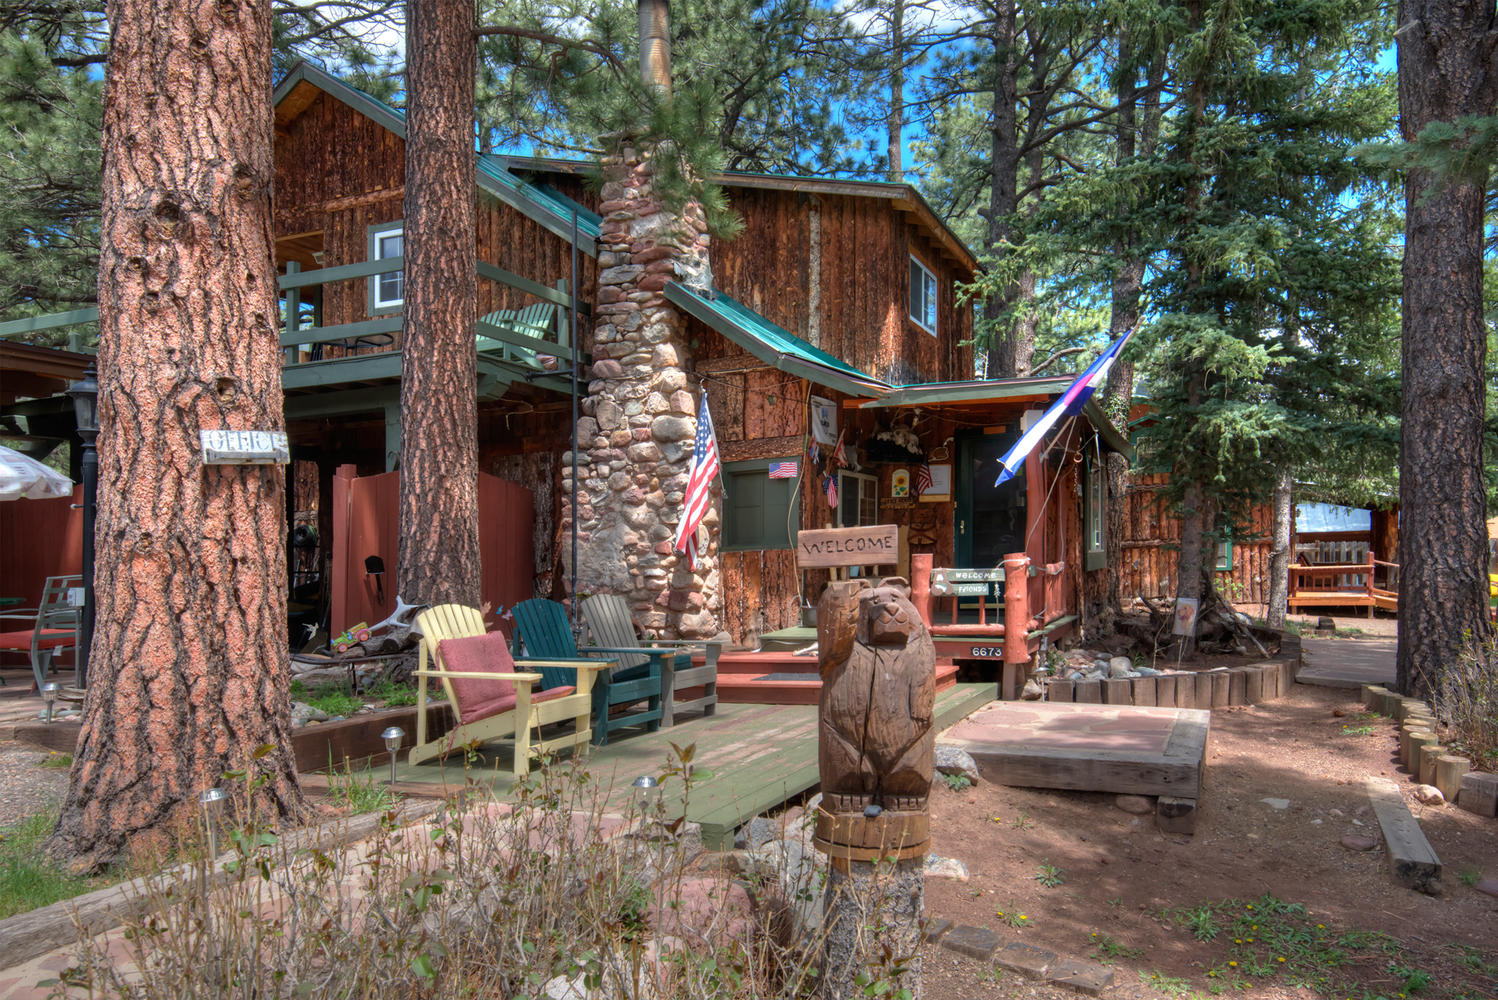 rent in for office feather lake cabins ramona new rental rentals colorado lakes red cabin